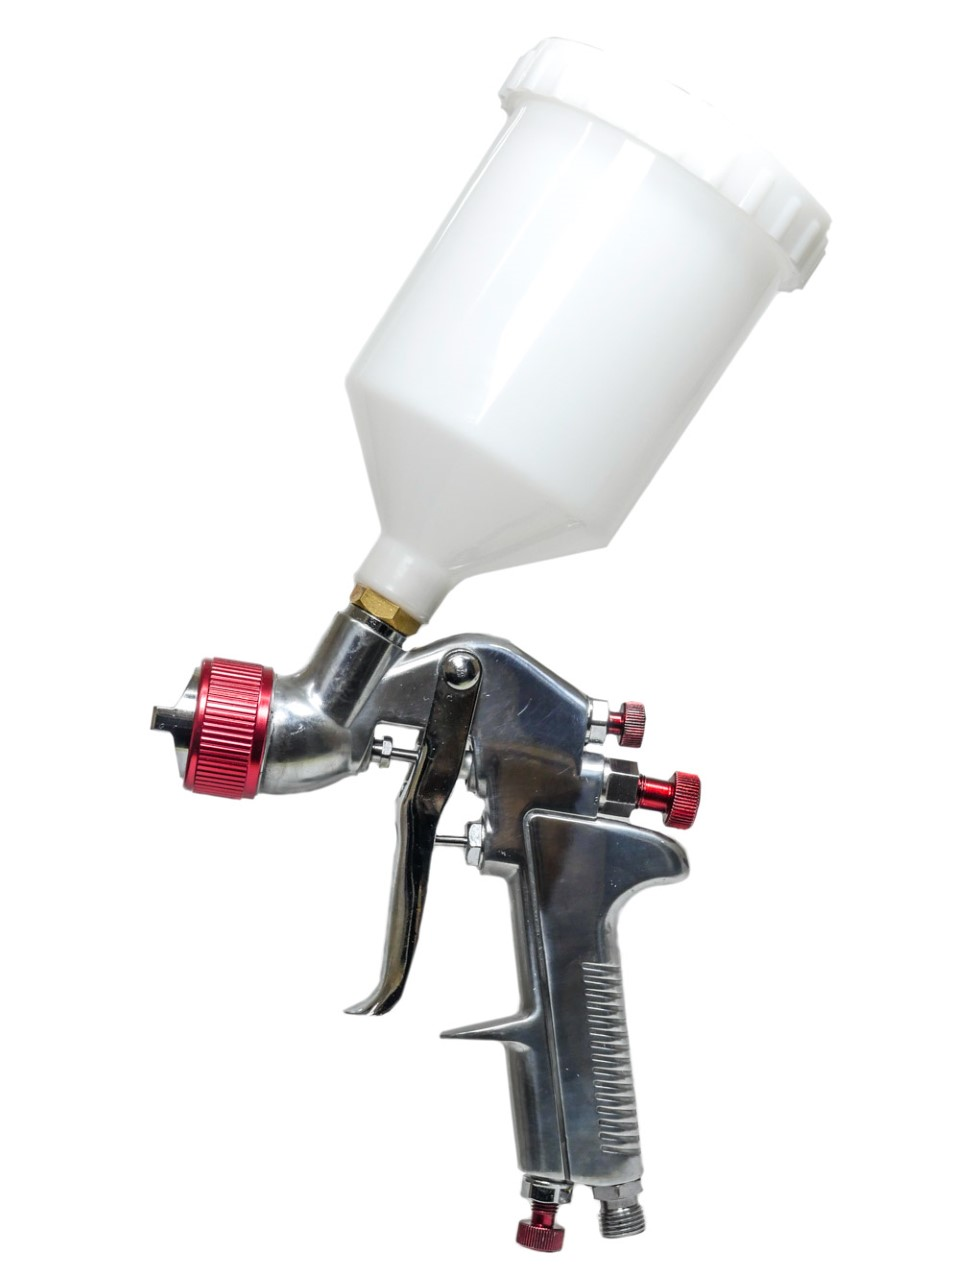 Gravity Feed Spray Gun Available in 1.4mm or 1.8mm